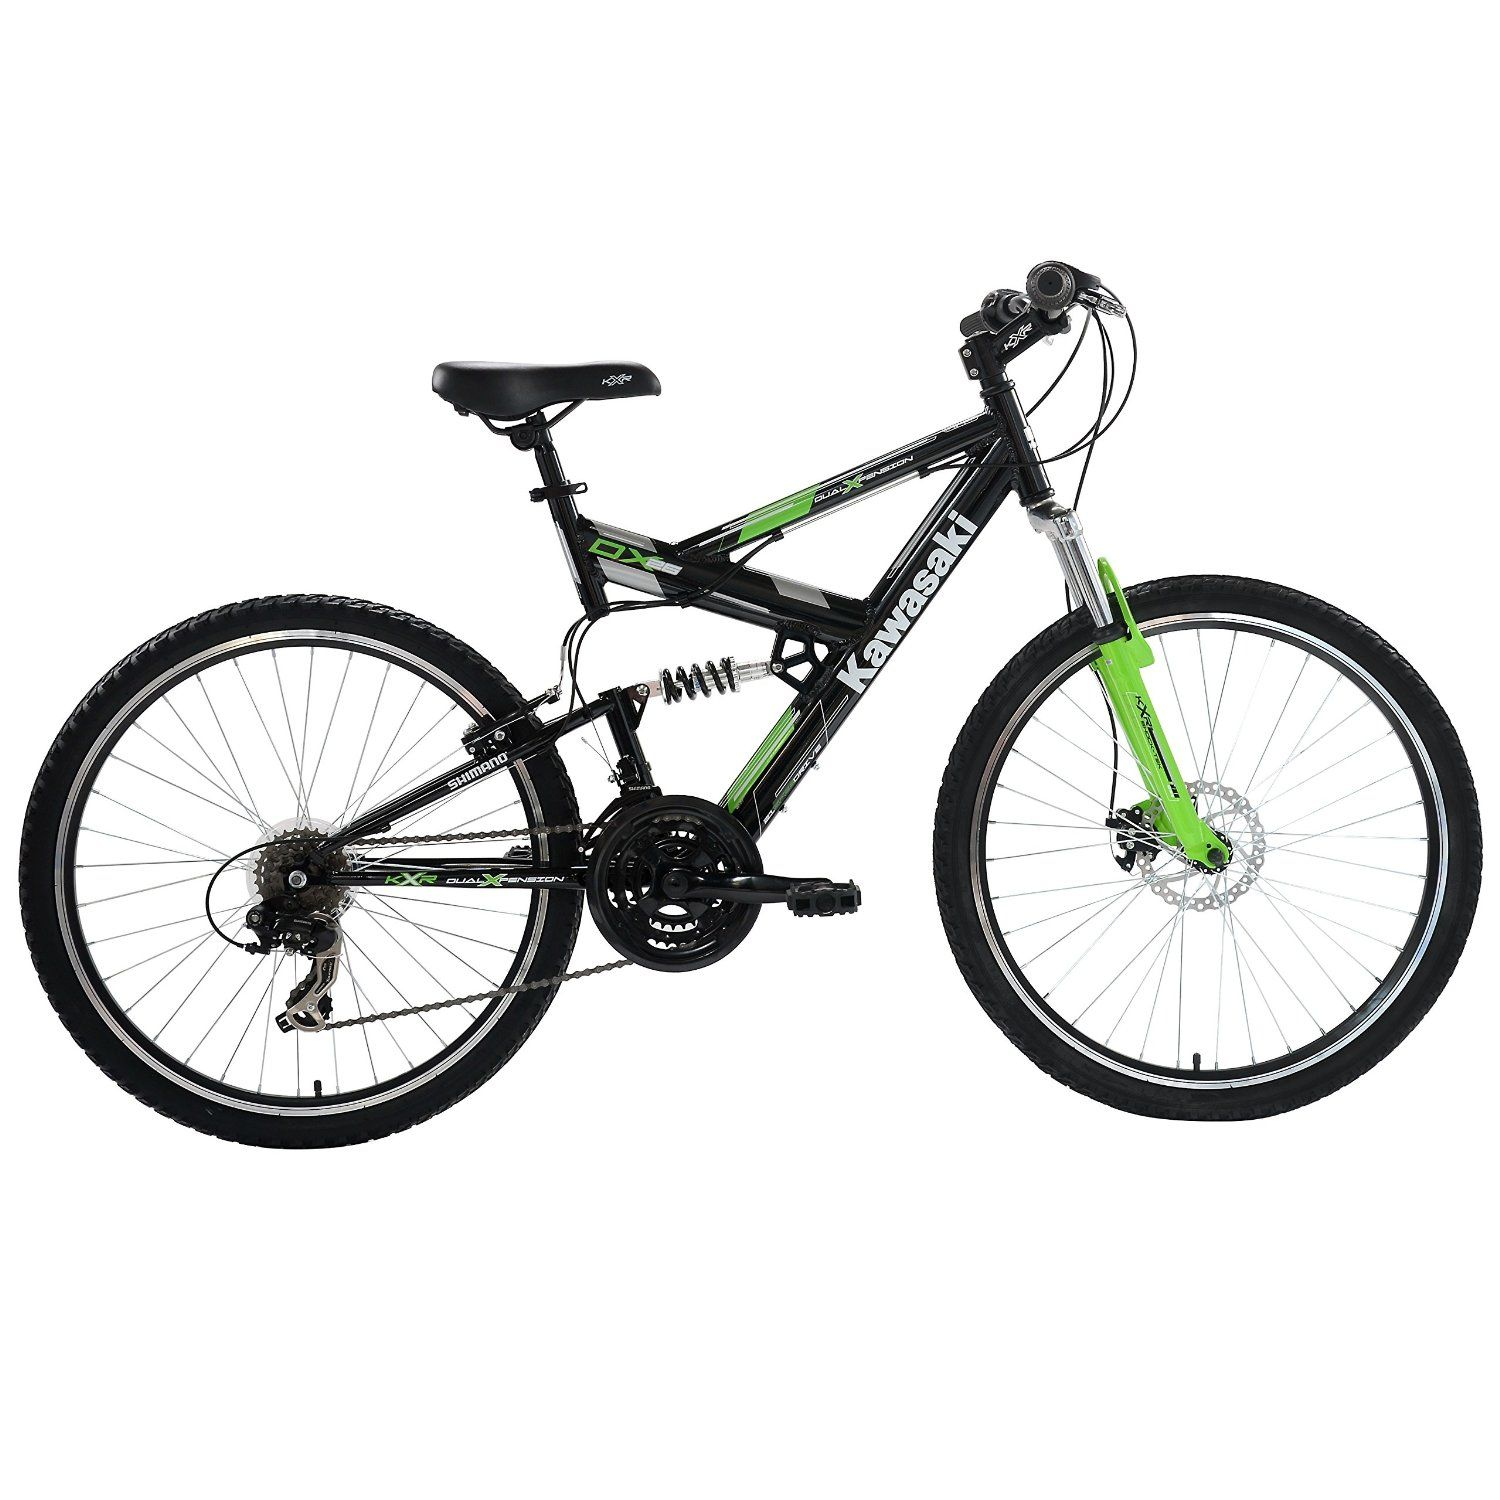 Kawasaki Dx Full Suspension Mountain Bike 26 Inch Wheels